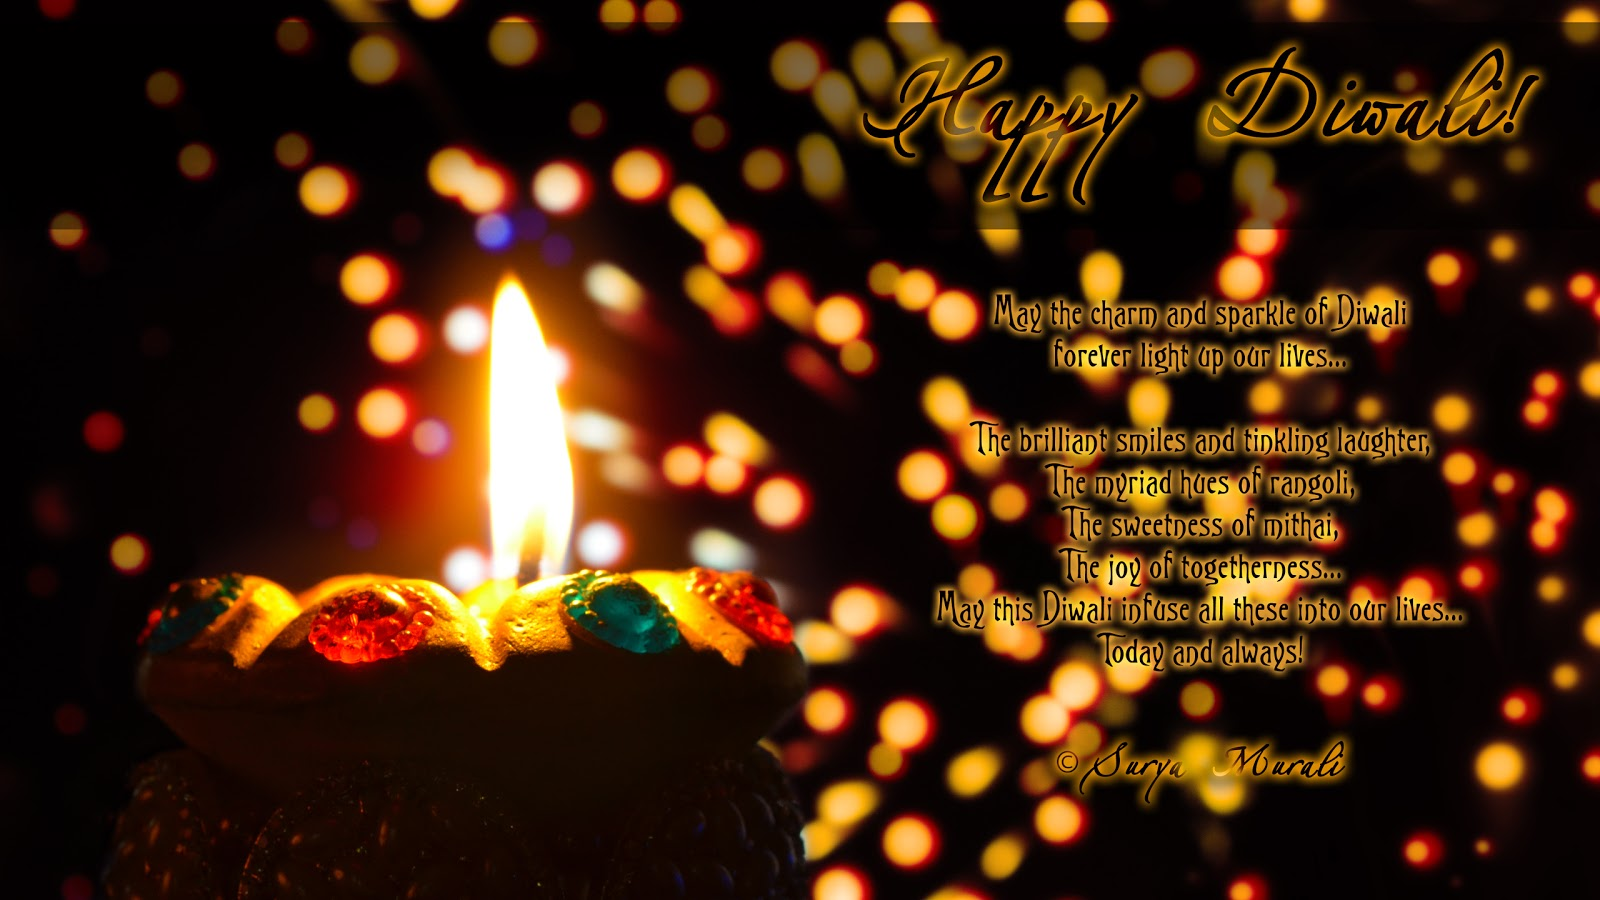 Nice Wallpapers Happy New Year Greetings Quotes 1080p Flawed Cracked But Rare Happy Diwali 2012